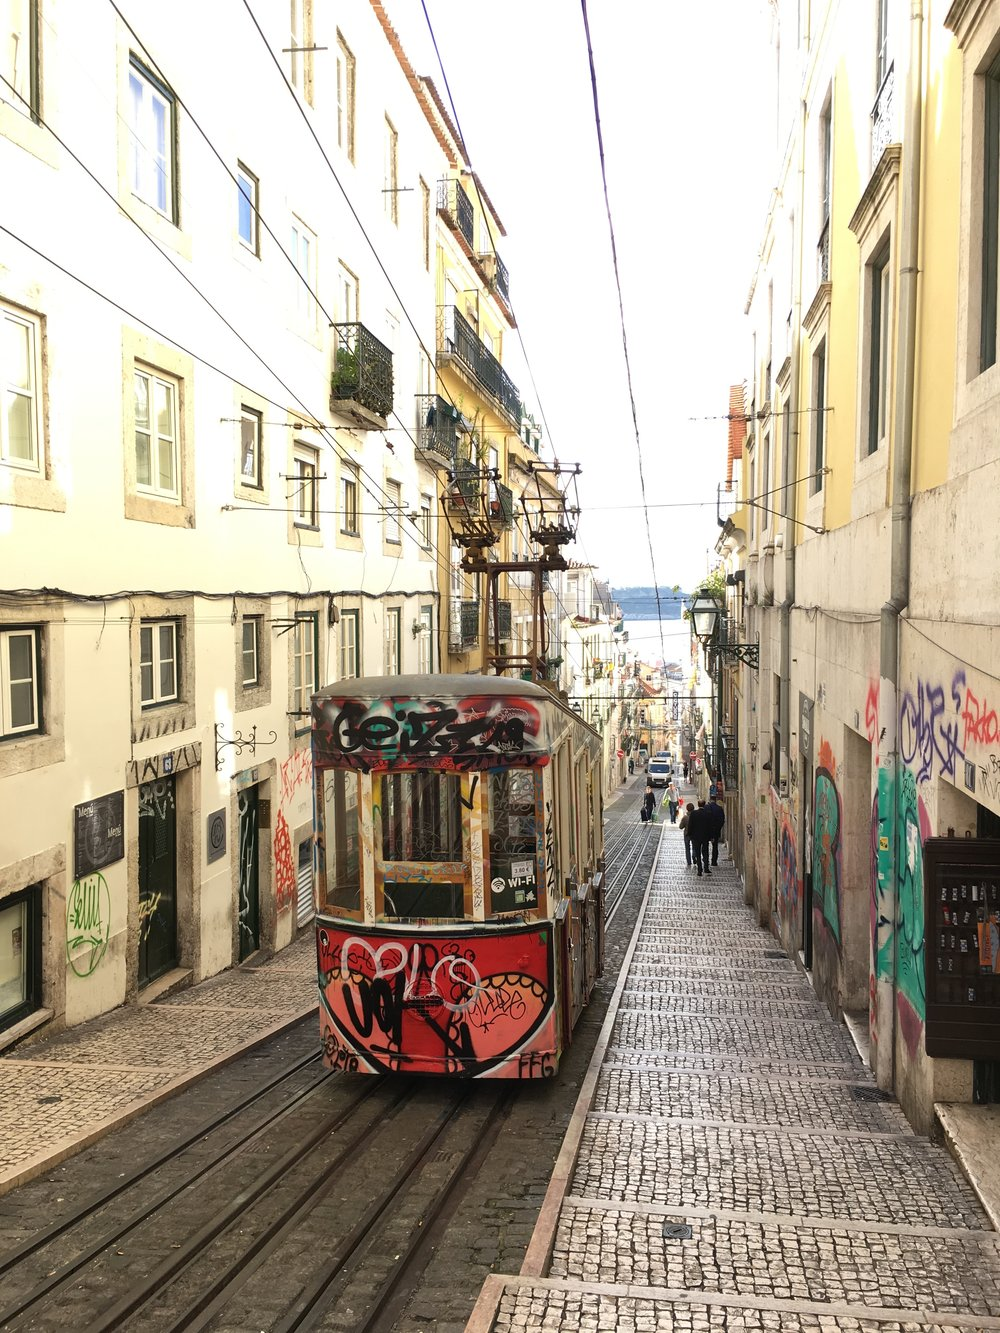 The Elevador da Bica next to our apartment